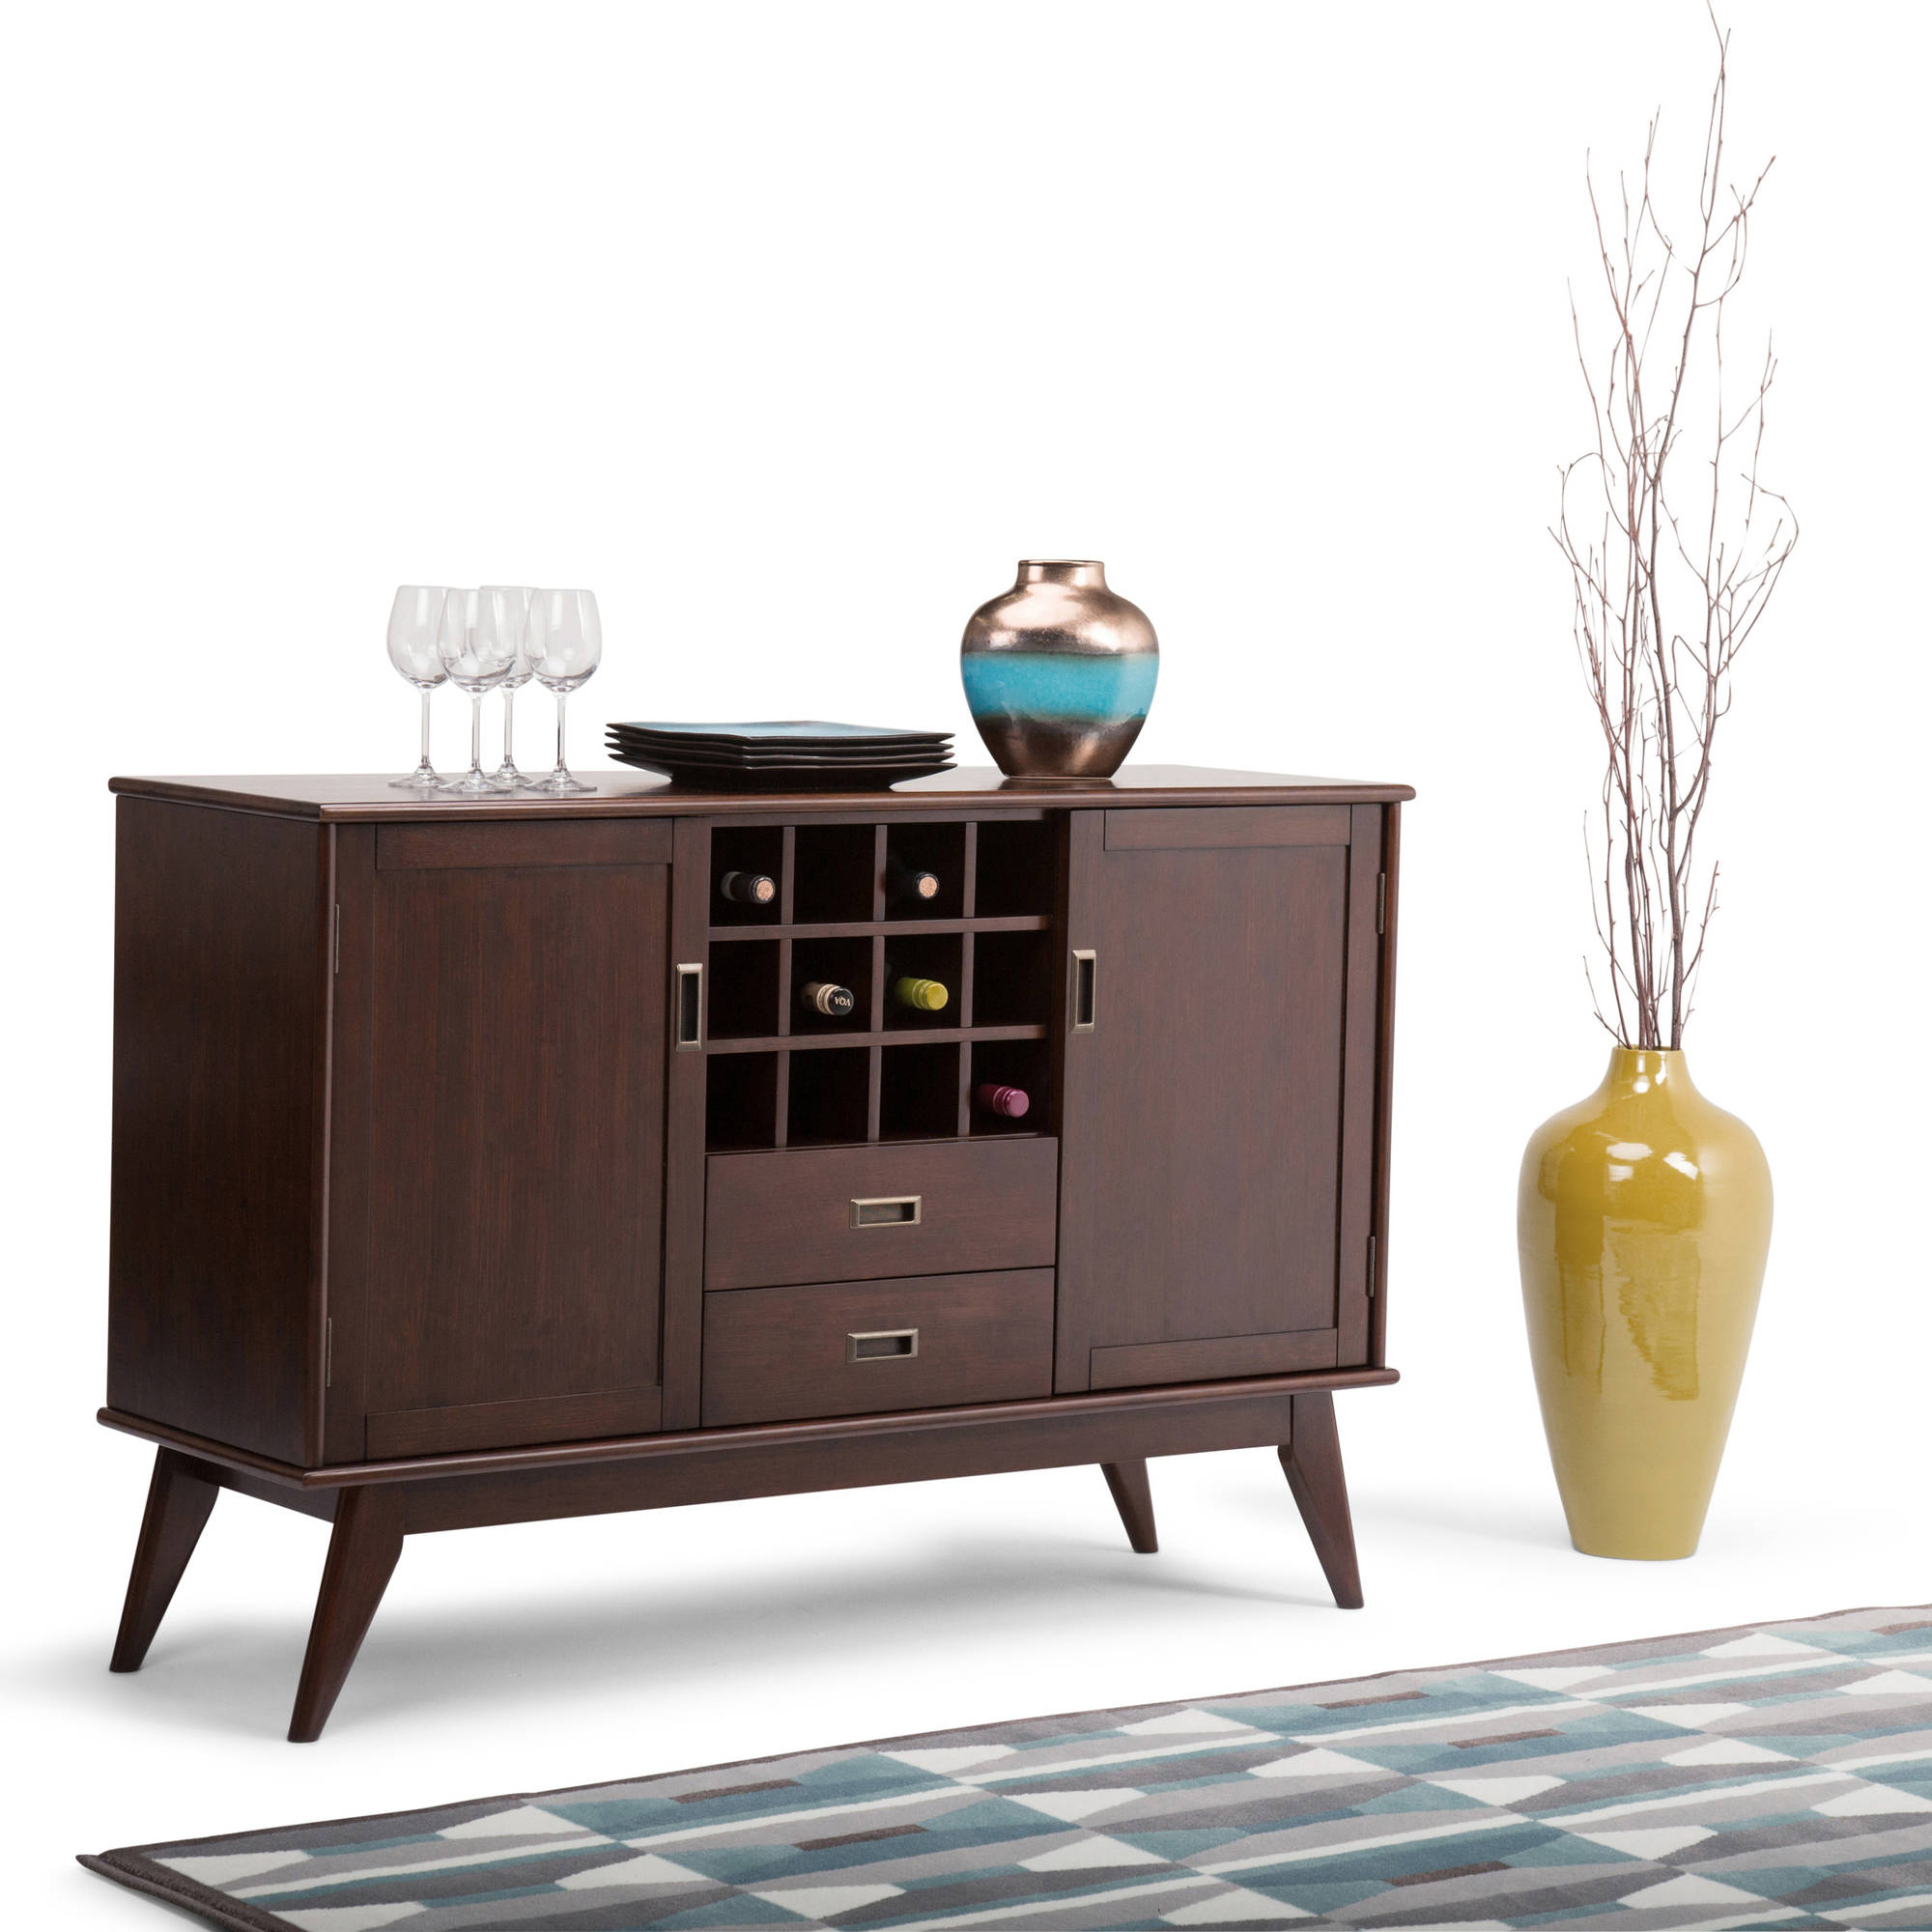 Draper Mid Century Sideboard Buffet & Winerack by CCT Global Sourcing Inc